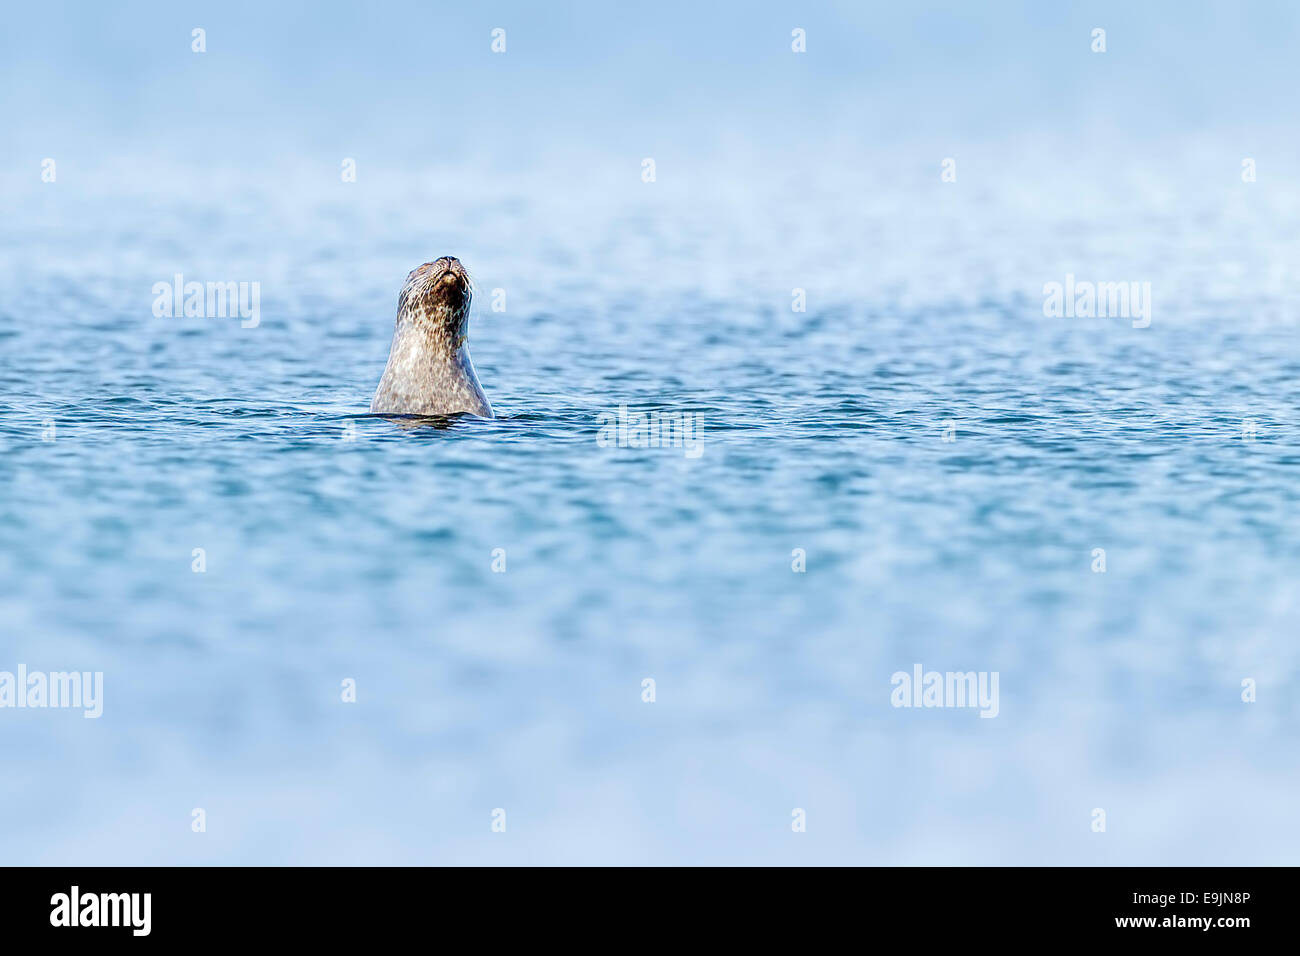 Harbour seal (Phoca vitulina) bottling in the blue waters near the shore of the Isle of Mull, Inner Hebrides, Scotland - Stock Image